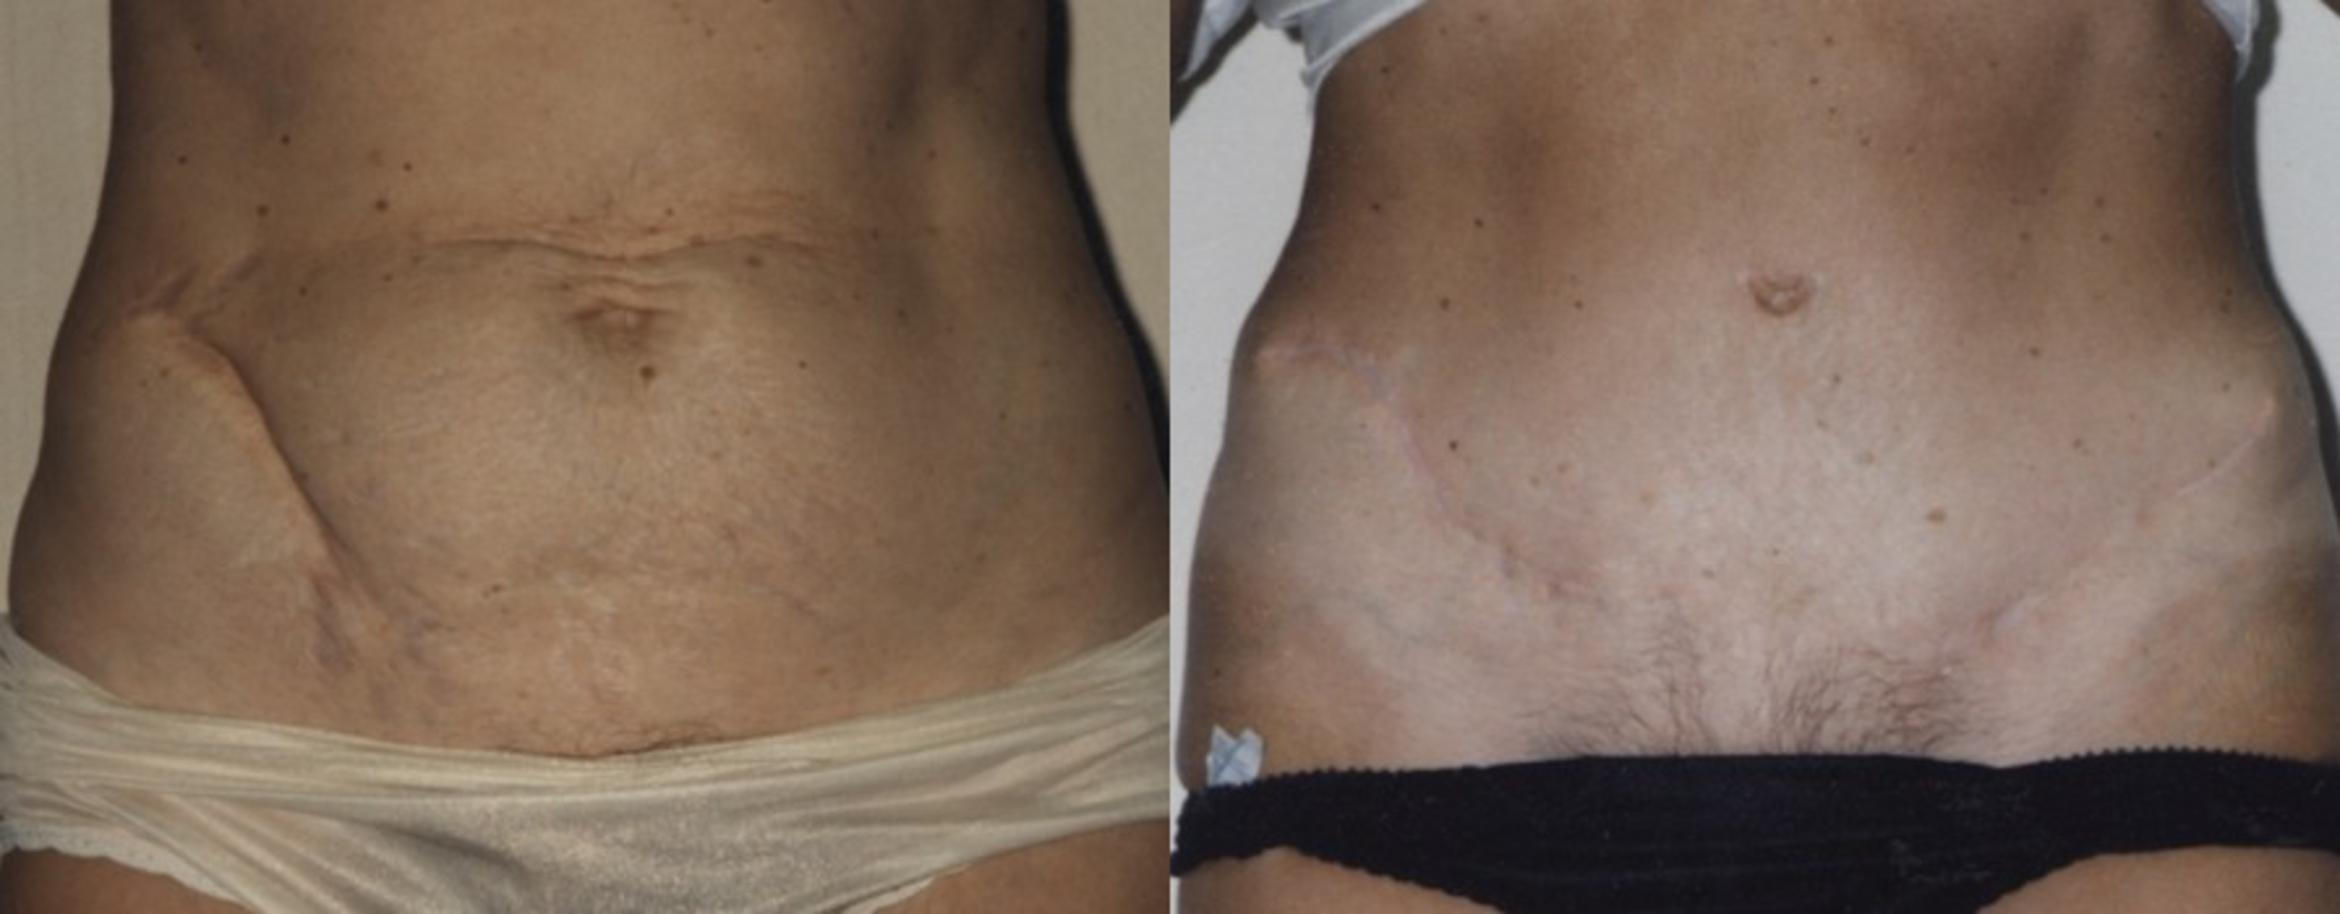 Abdominoplasty (Tummy Tuck) Before & After Photo | Jersey City, New Jersey | The Derm Group